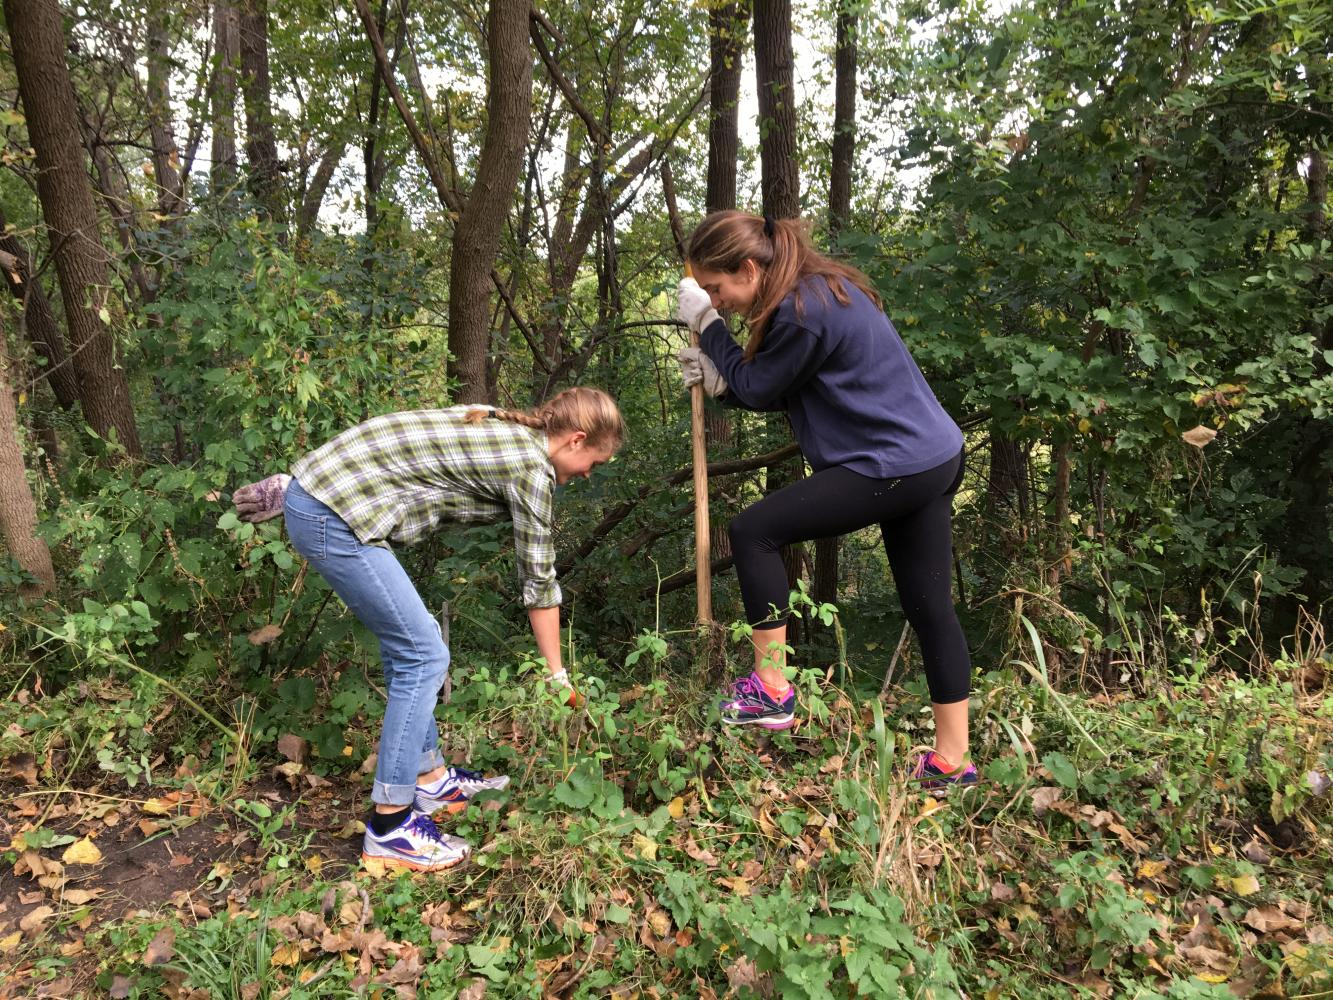 Seniors Flannery Enneking-Norton and Emilia Hoppe work to dig up invasive species, such as weeds.